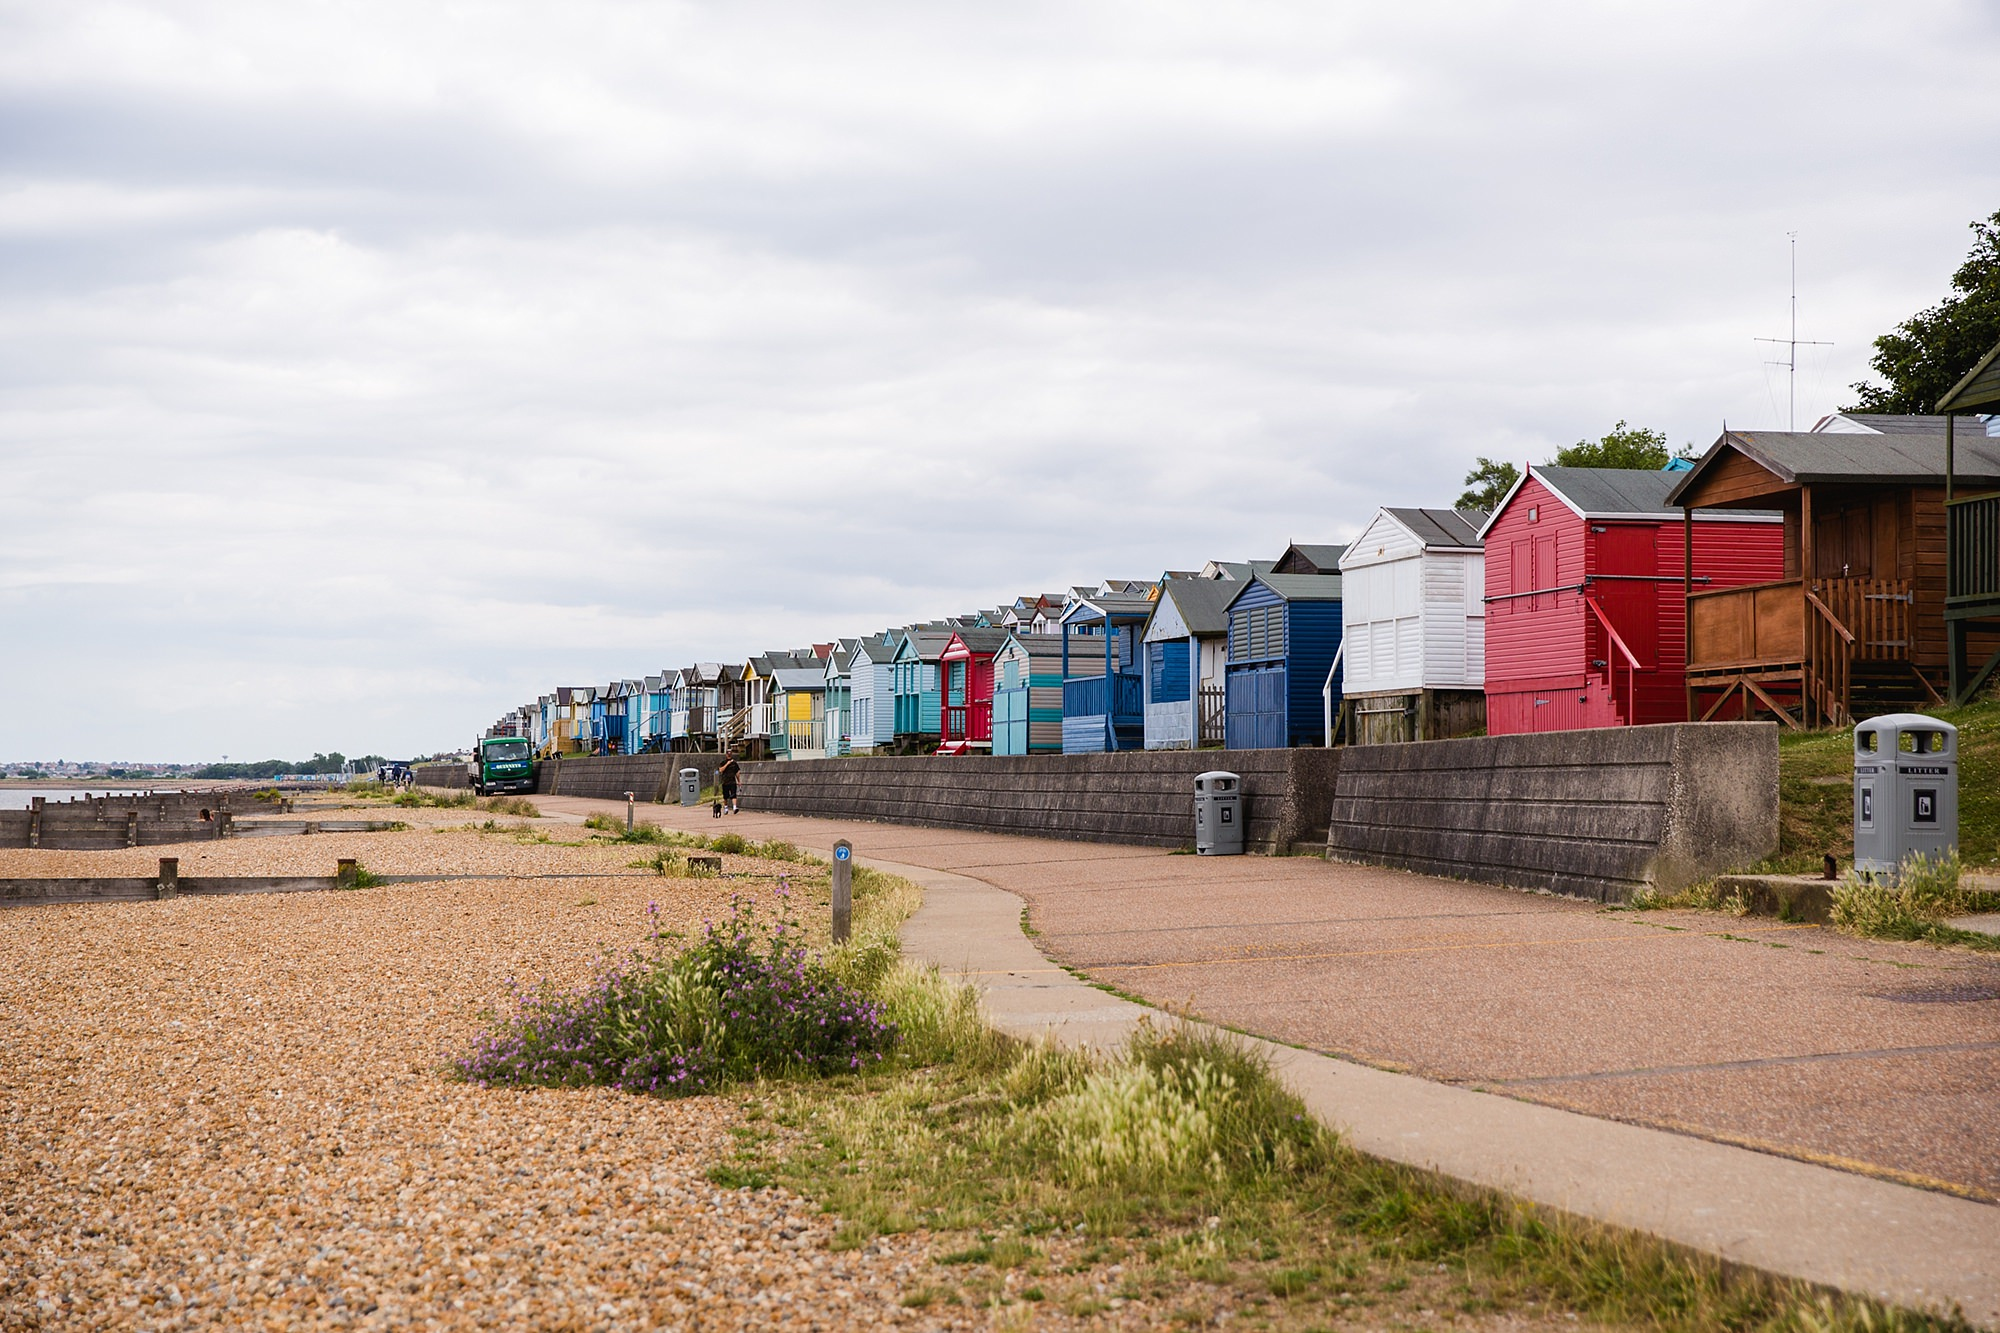 Beacon House wedding picture of beach houses lining the sea front in whitstable